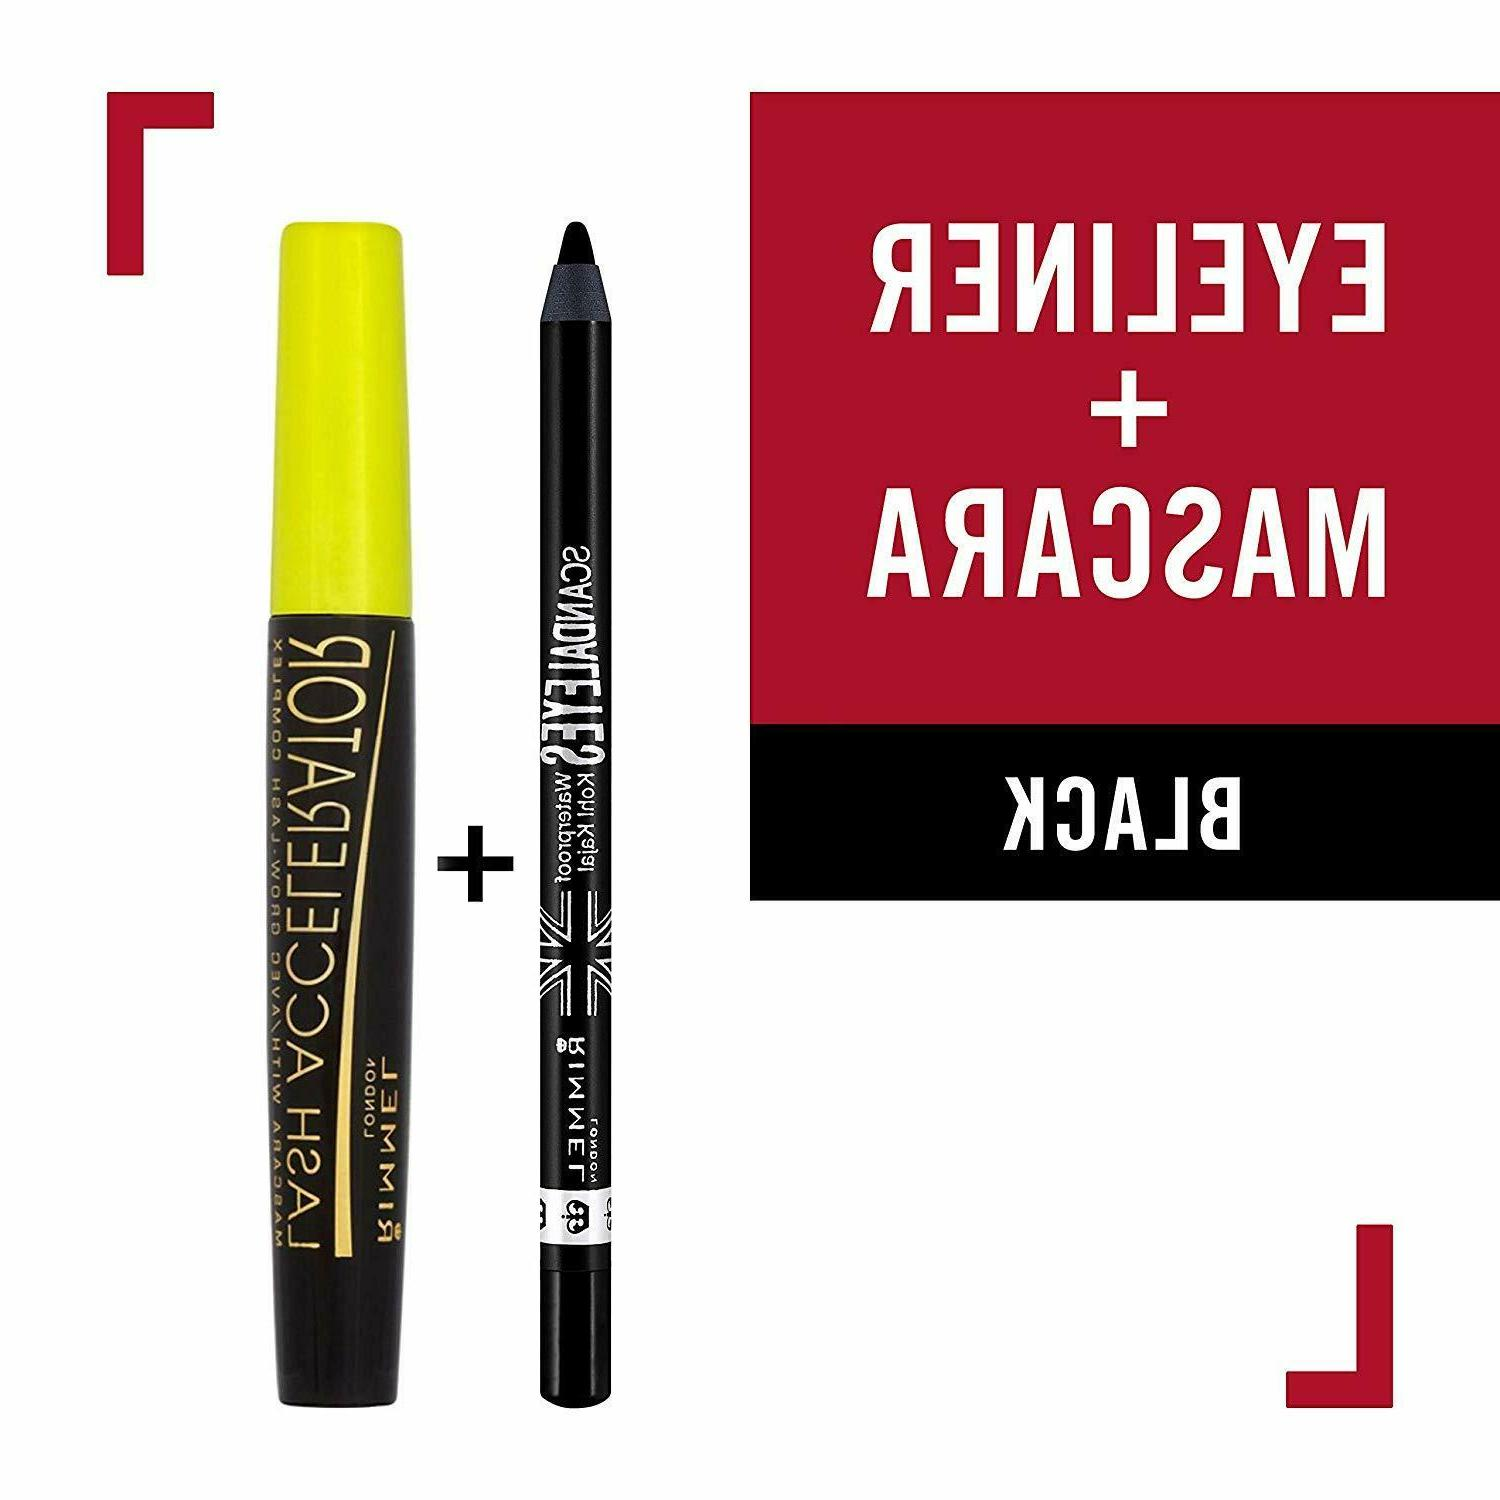 Rimmel Scandaleyes Waterproof Kohl Kajal Liner, Black, Fluid